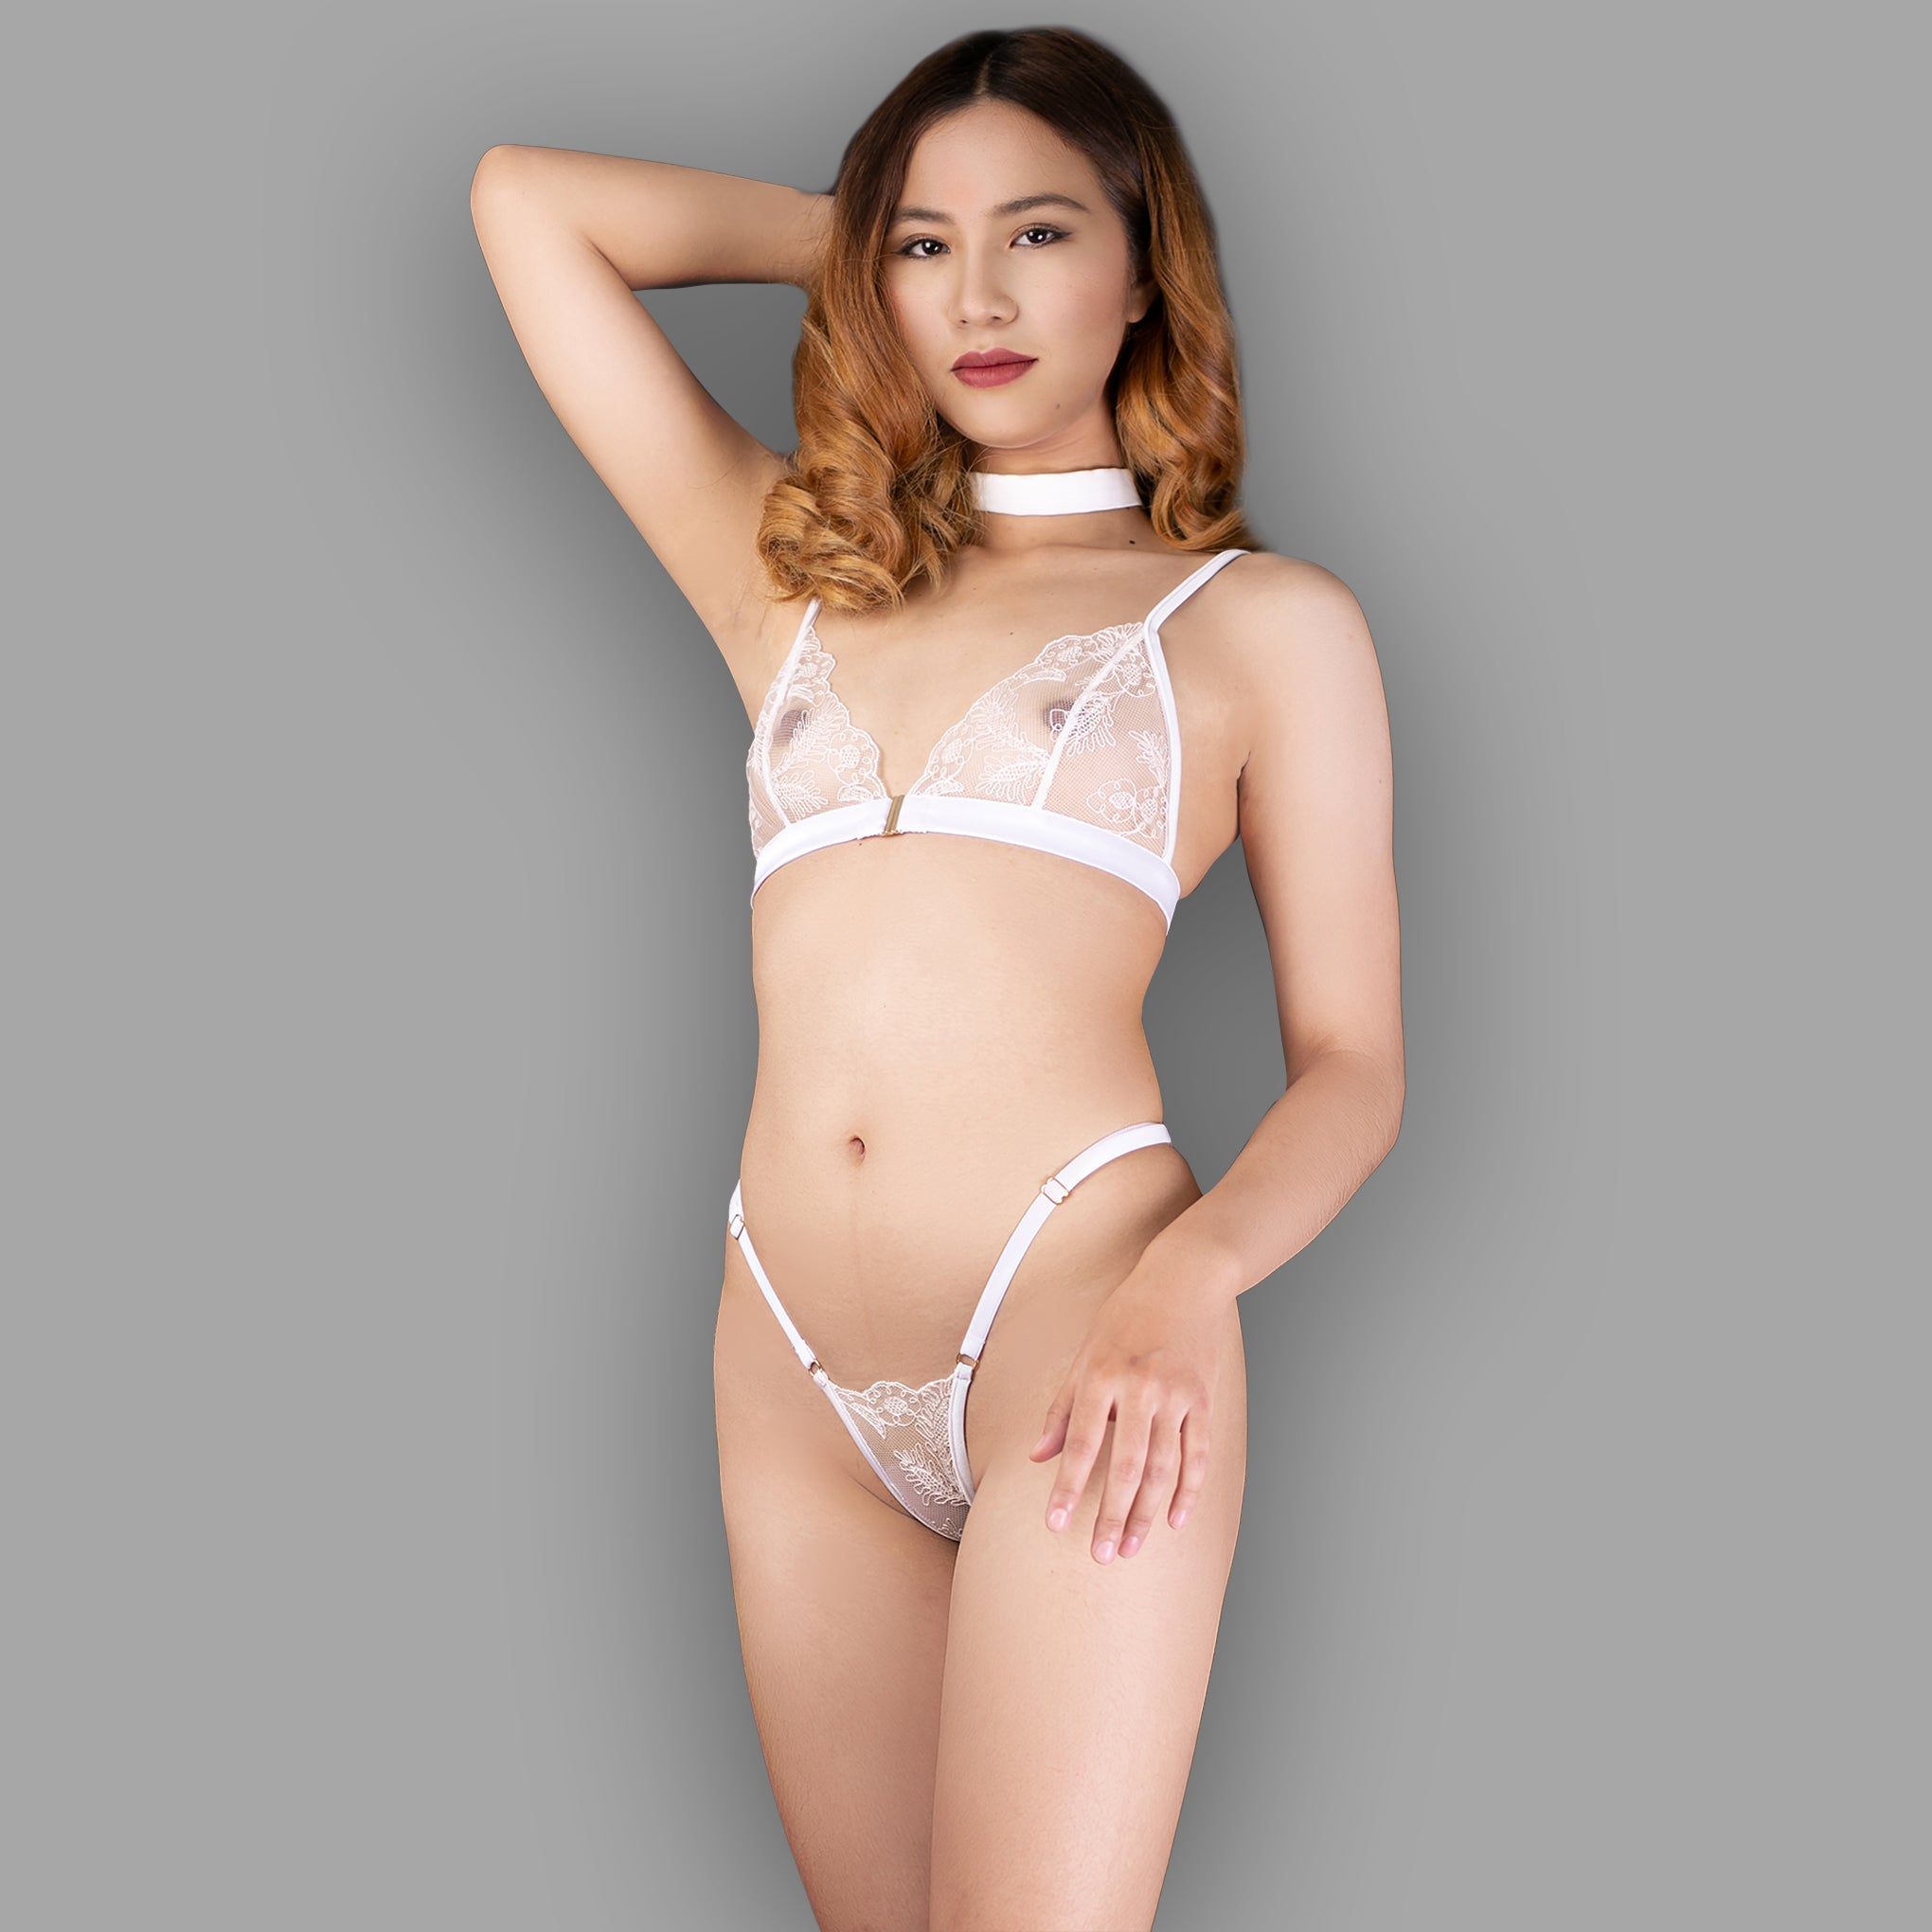 Sheer See through lingerie g string gift for her in white lace  high cut Micro panties thong - Ange Déchu